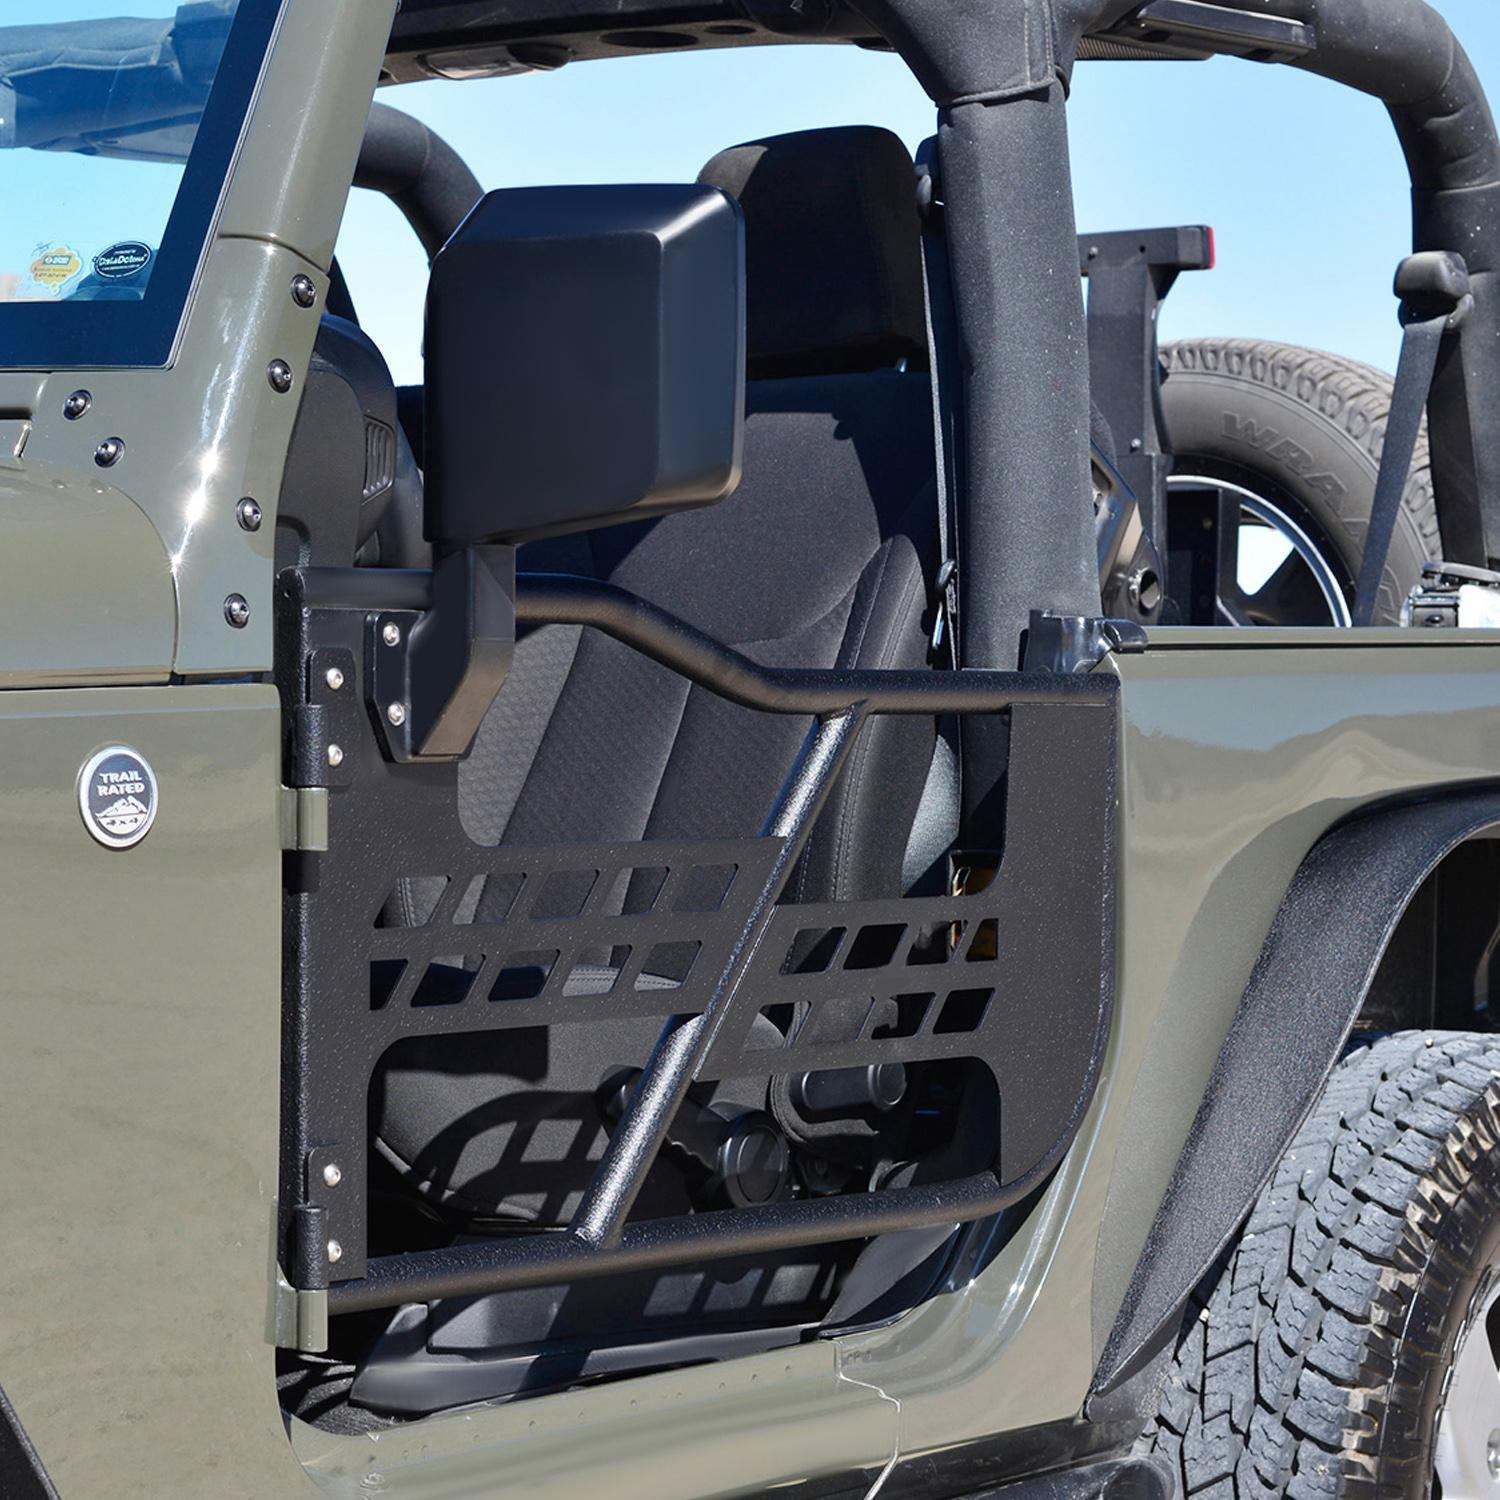 EAG Safari Doors for 2007-2017 Jeep Wrangler Jk & Amazon.com: EAG Safari Tubular Doors with Side Mirrors for 07-18 ...